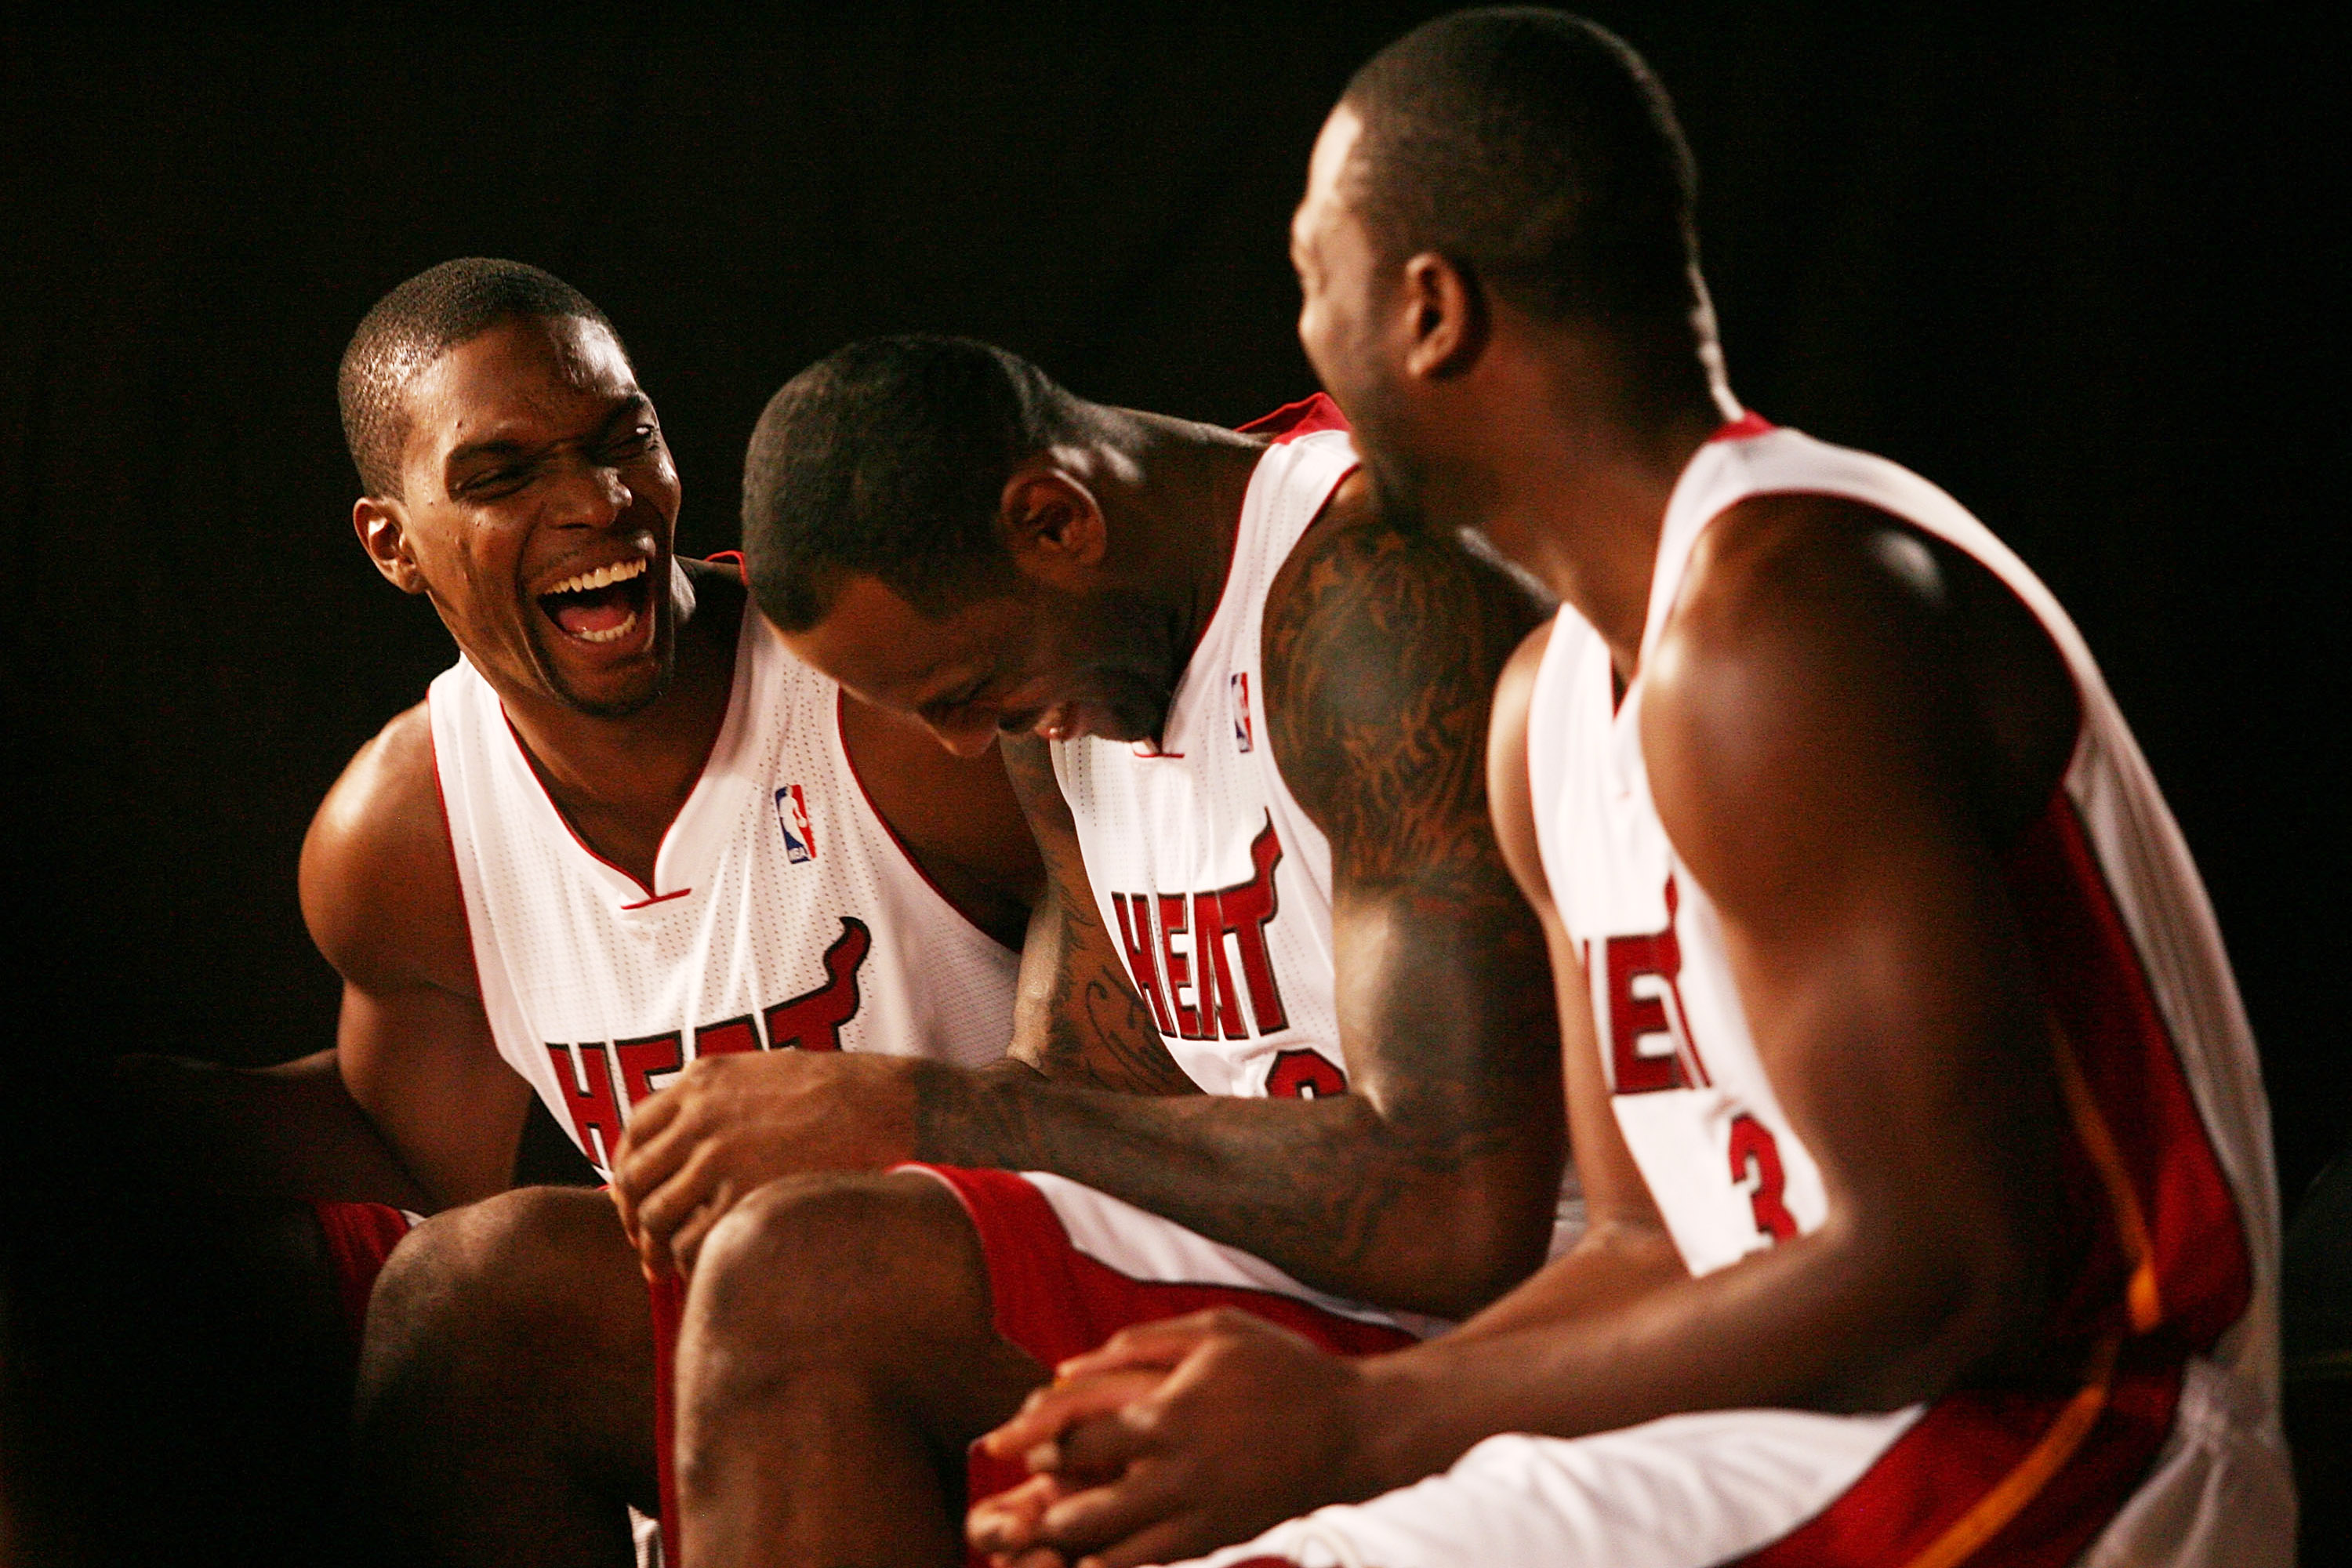 MIAMI - SEPTEMBER 27:  (L-R) Chris Bosh, LeBron James and Dwyane Wade of the Miami Heat answers questions during media day at the Bank United Center on September 27, 2010 in Miami, Florida.  (Photo by Marc Serota/Getty Images)